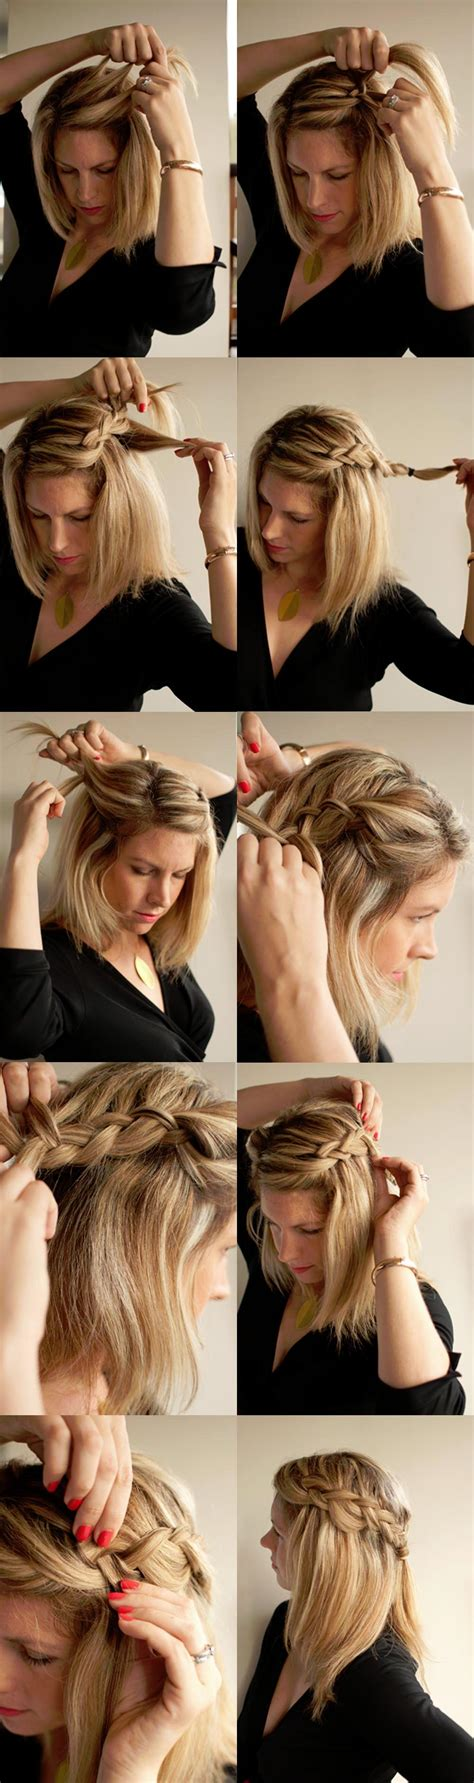 22 ways to make your hairstyle with braids pretty designs